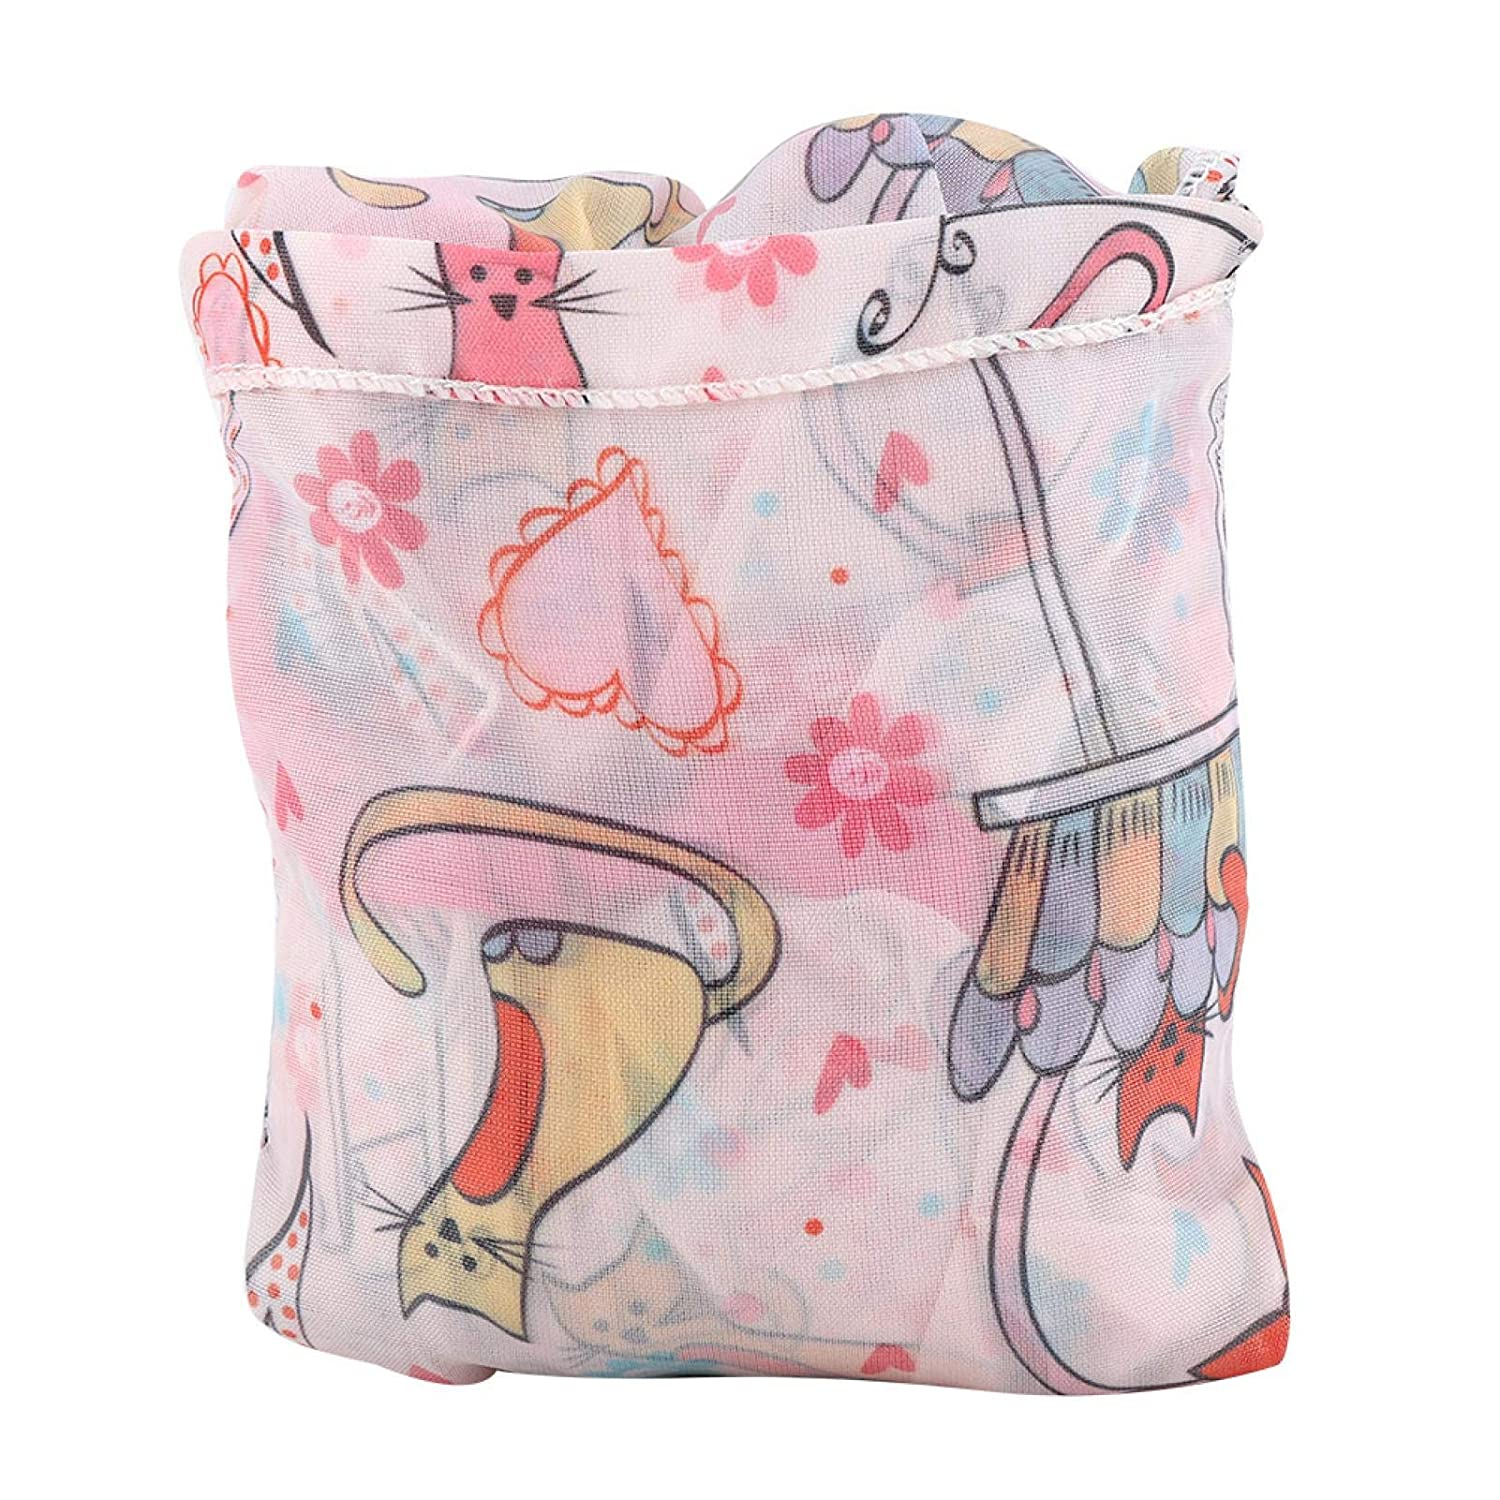 Shopping Cart Cover Baby Restaurant High Chair Cover Children Folding Shopping Cart Cover Anti Dirty Kids Trolley Seat Chair Cover (Pink)